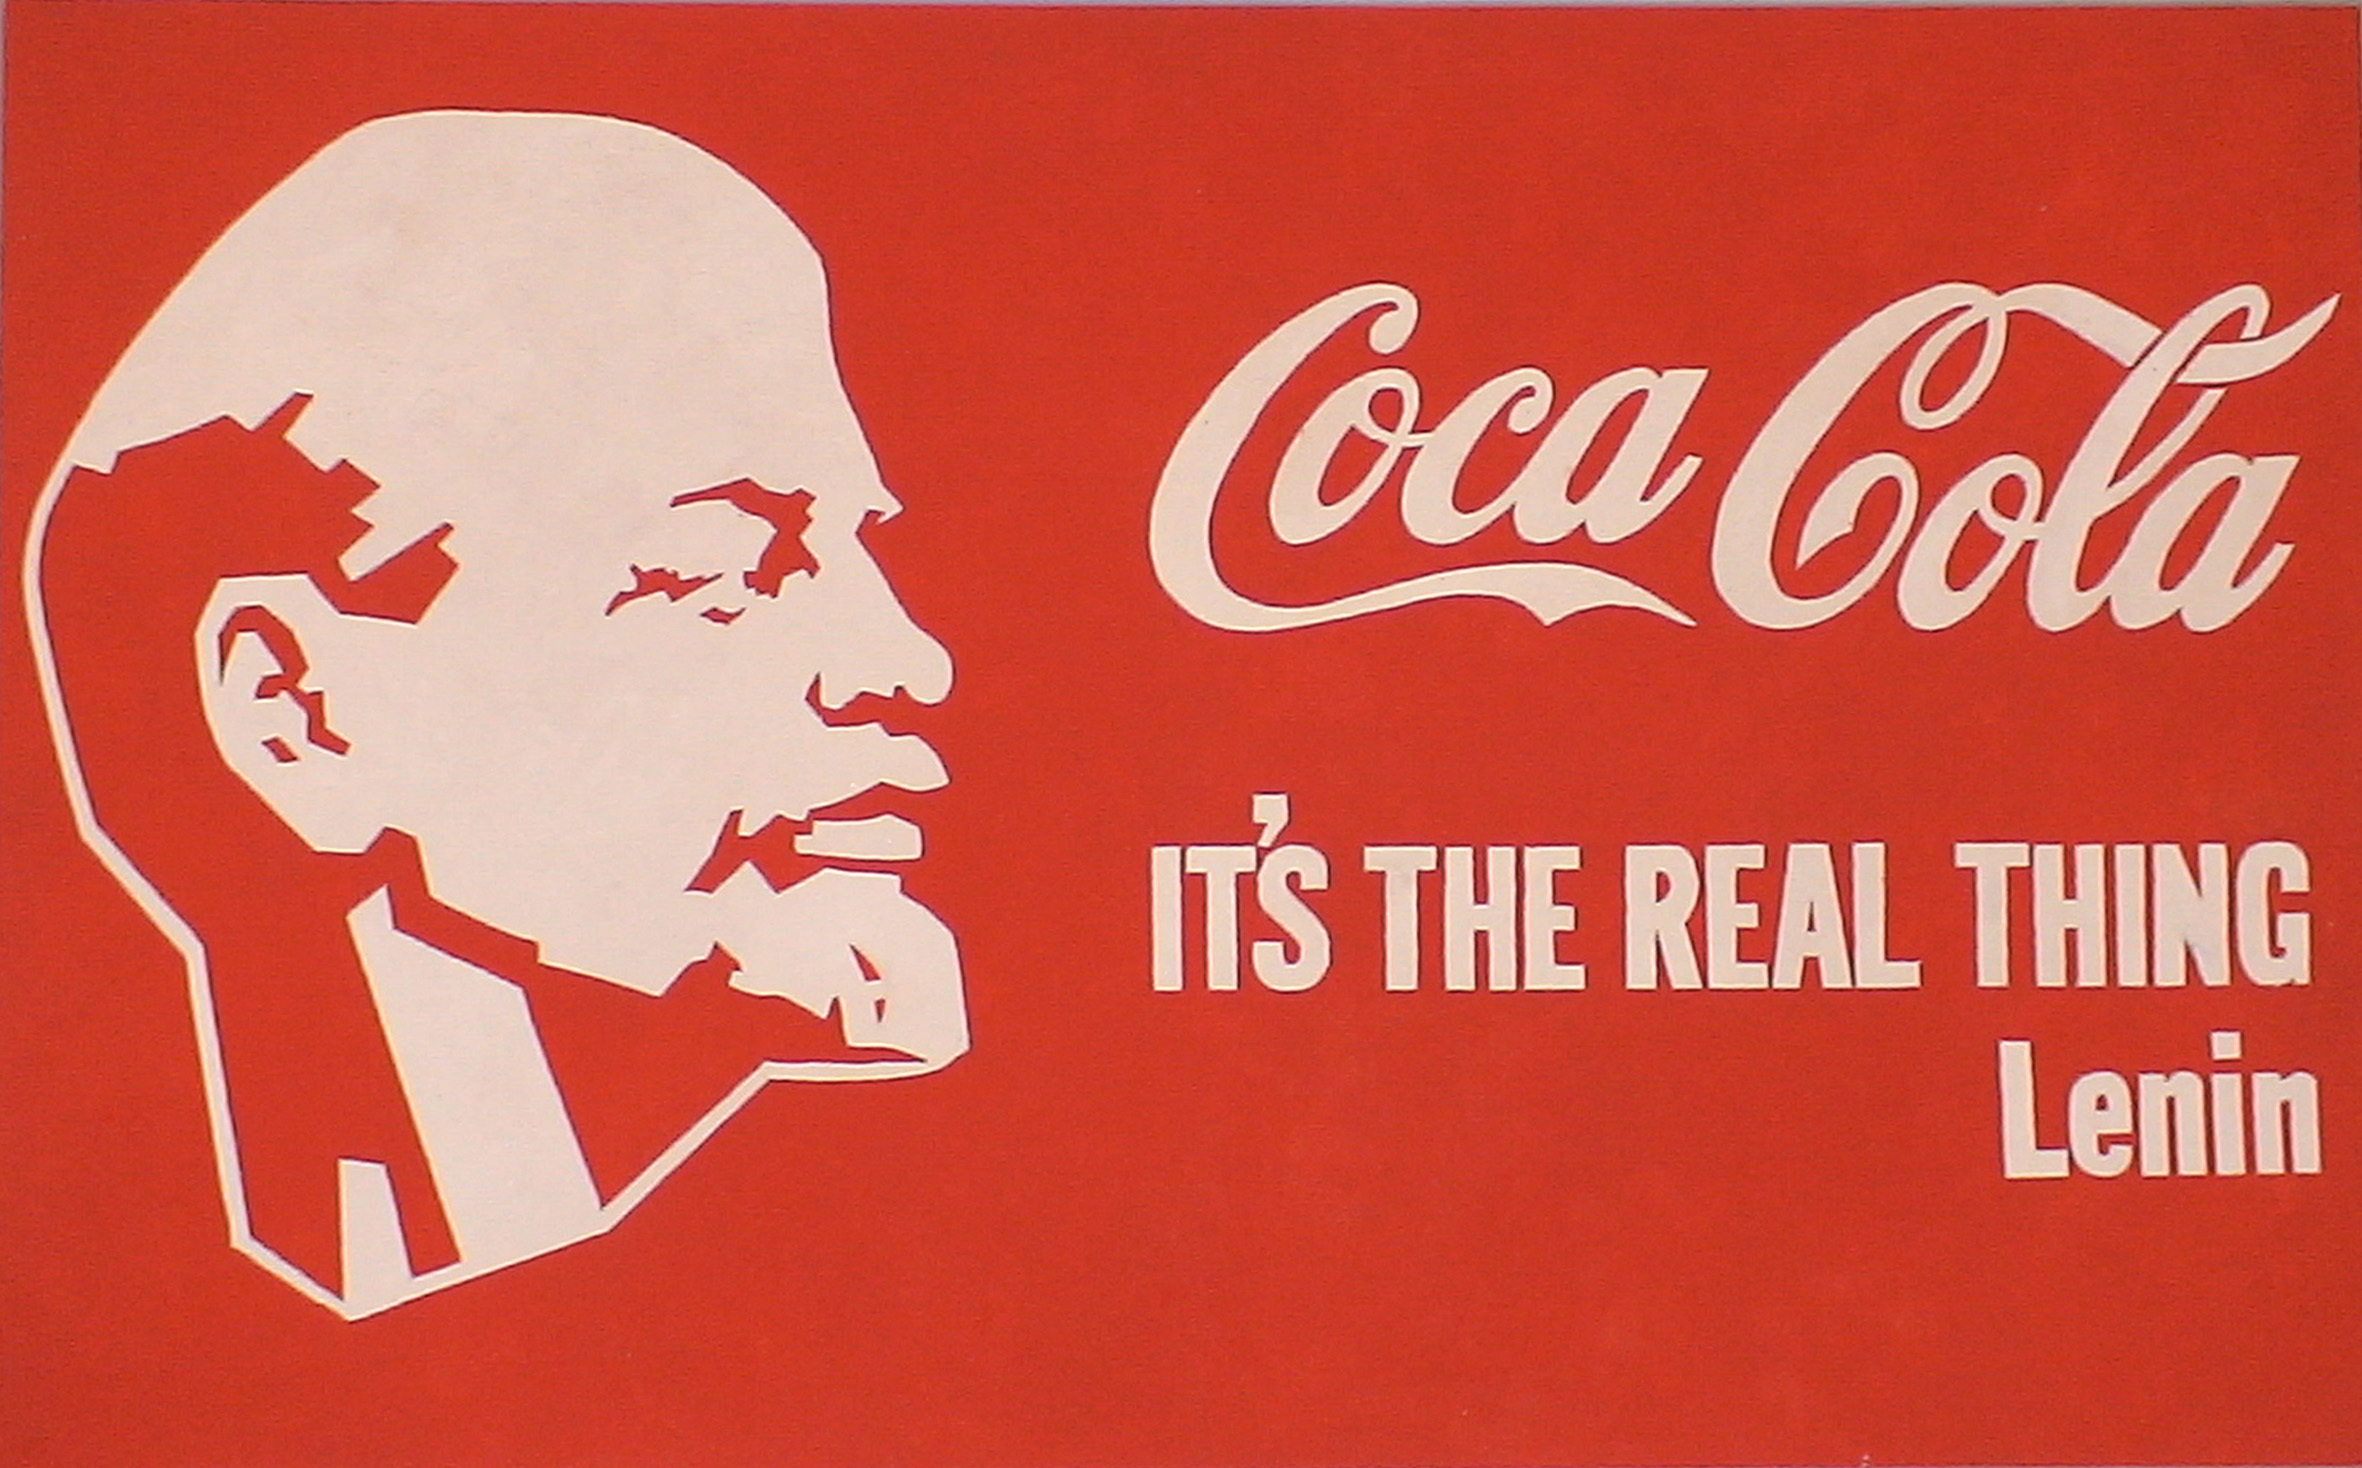 communism coca-cola USSR HD Wallpaper